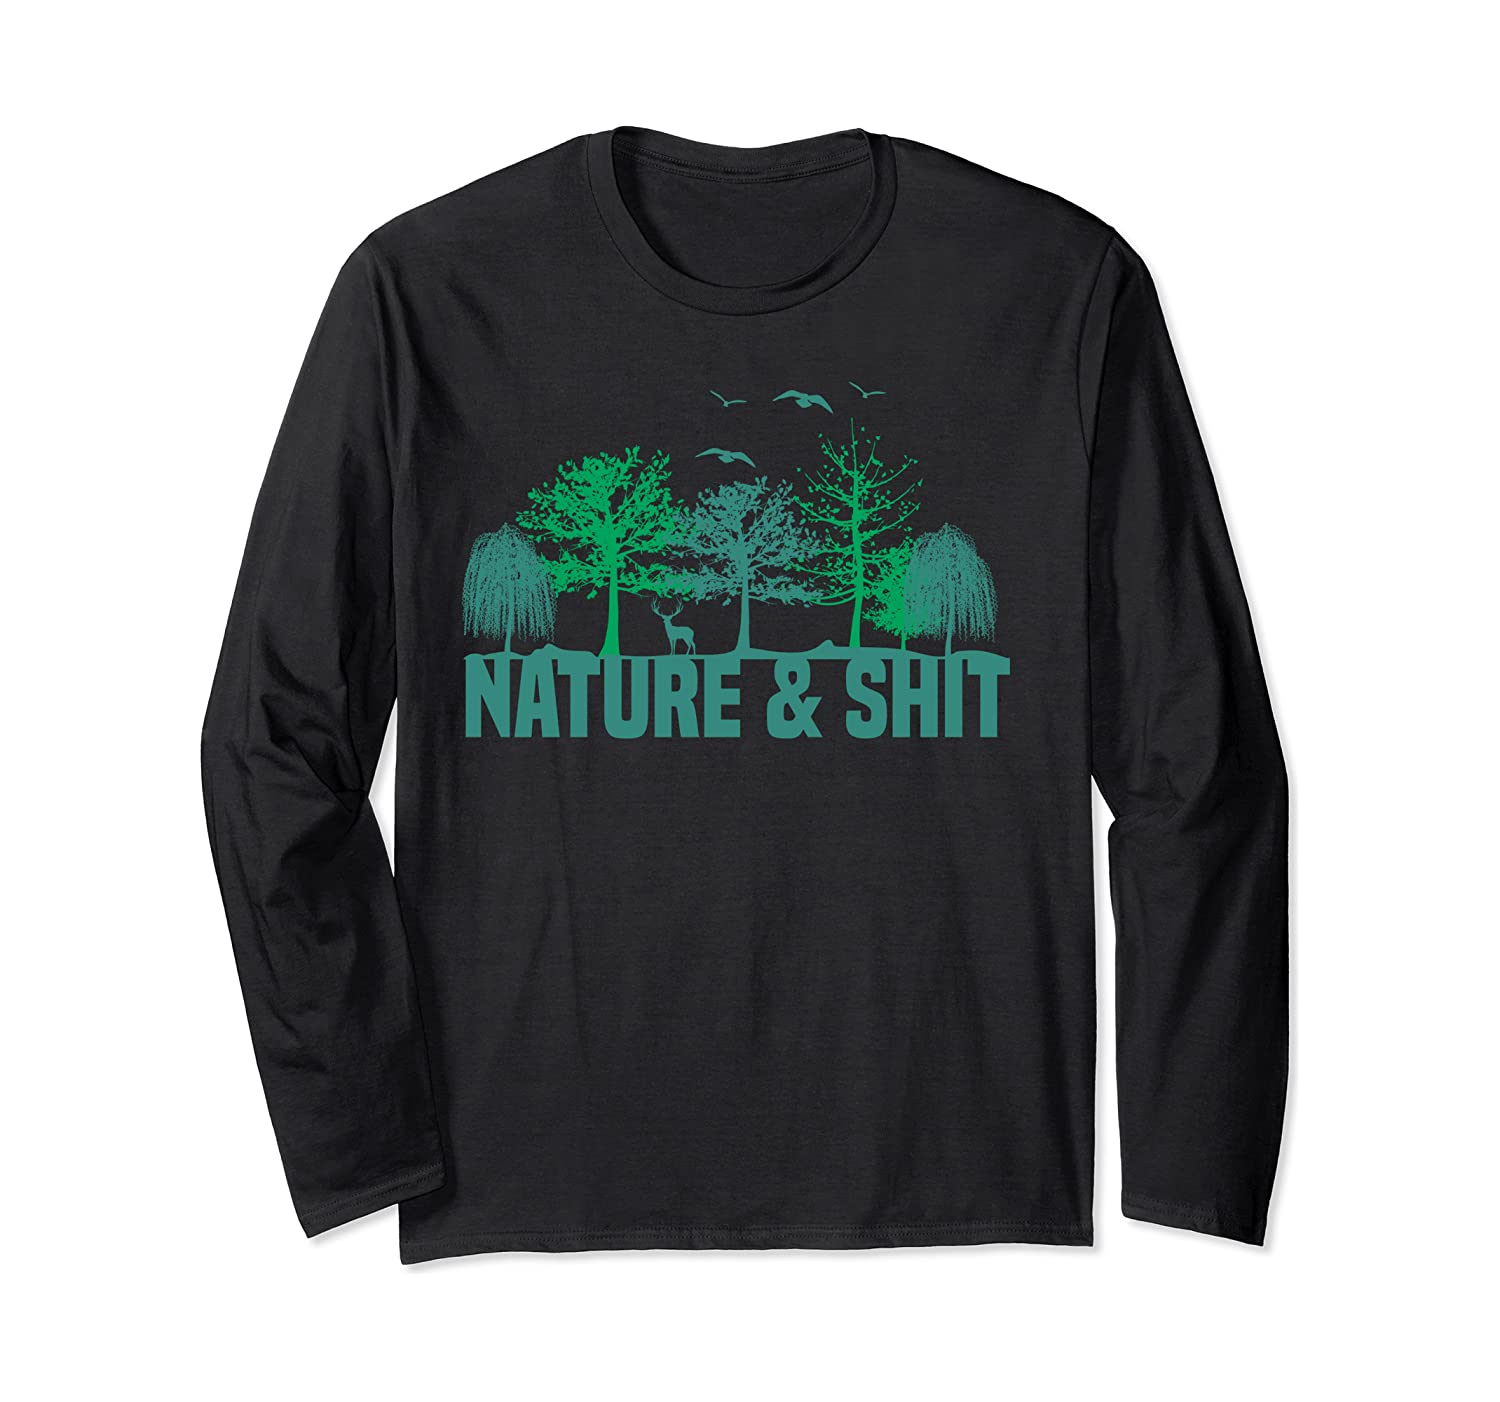 Nature & Shit Funny Outdoors Wilderness Forest Trees Camping Long Sleeve T-Shirt